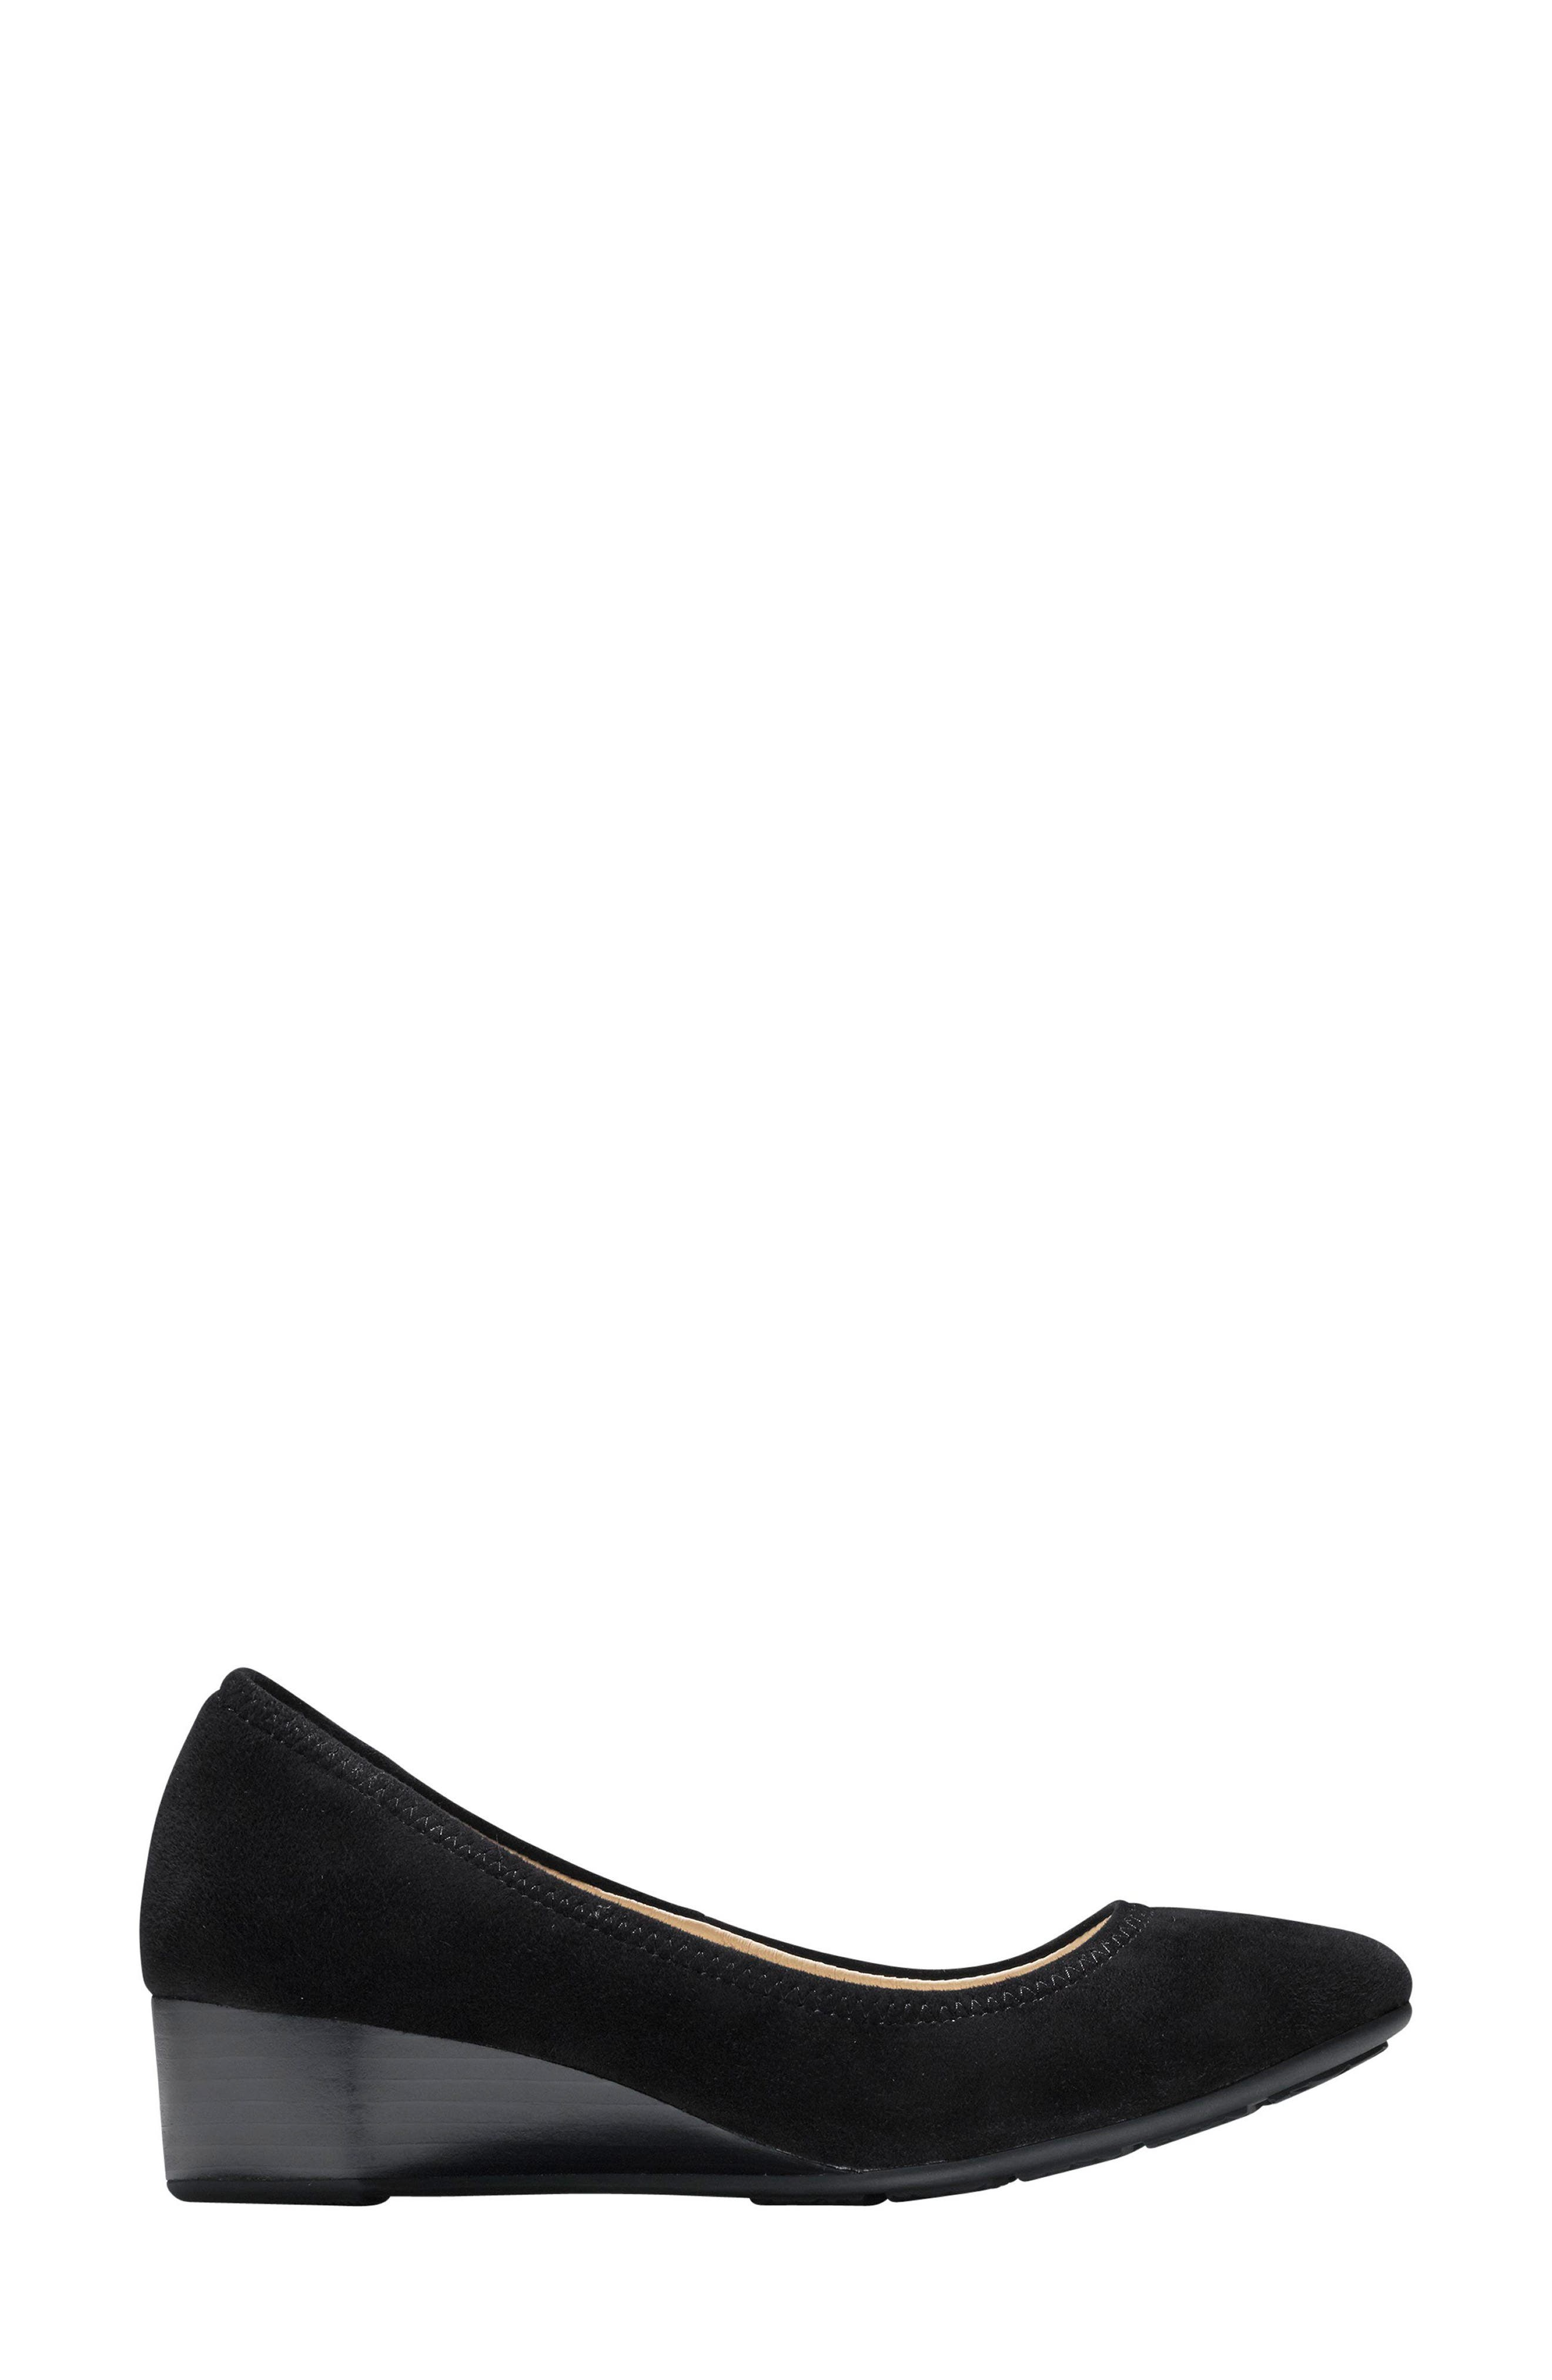 Sadie Wedge Pump,                             Alternate thumbnail 3, color,                             BLACK SUEDE